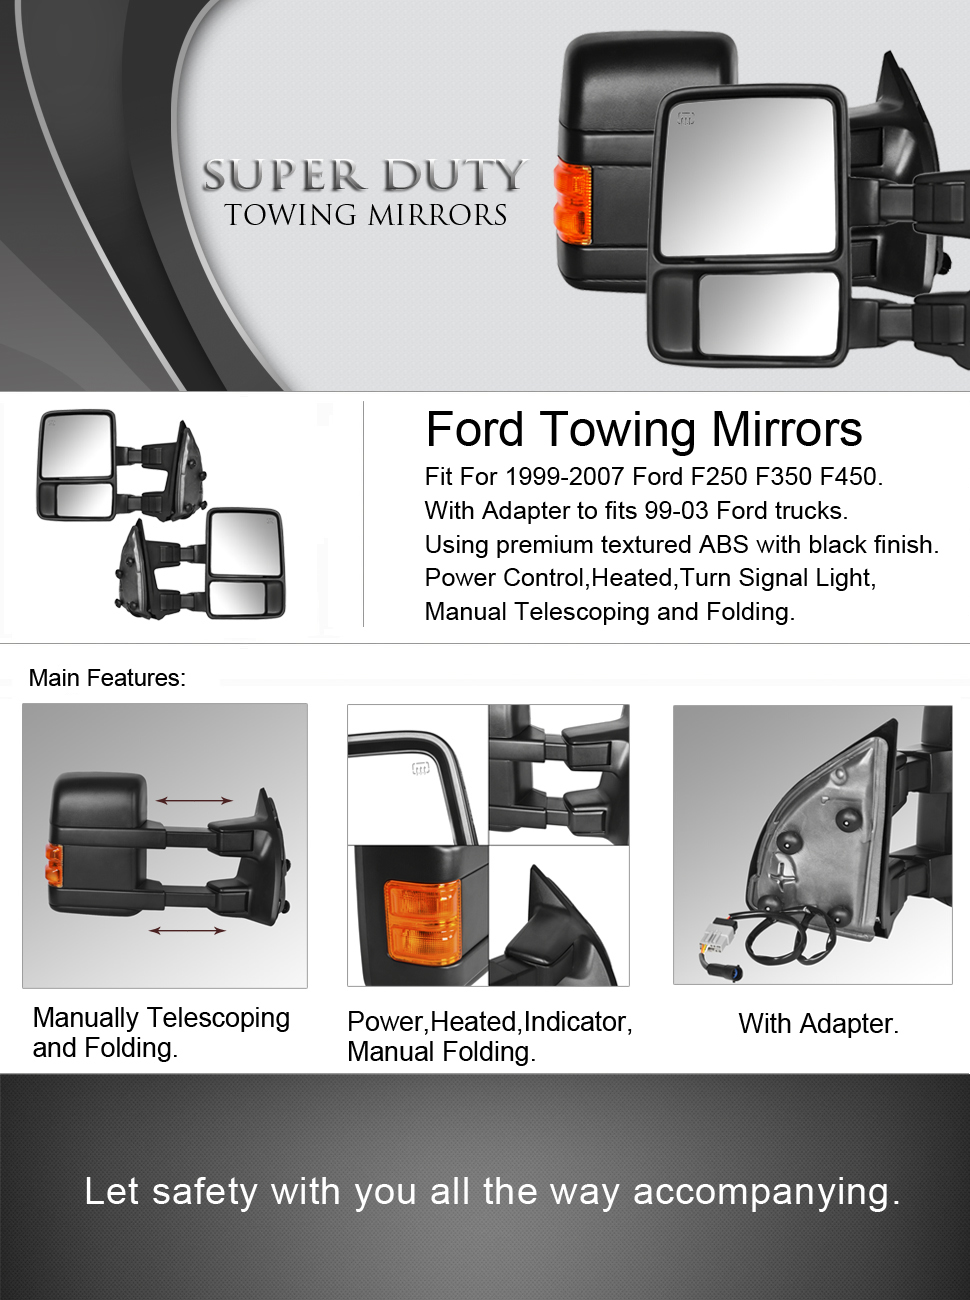 Dedc Ford Towing Mirrors F250 Tow F350 F450 Remote Activated Plug And Play Start For Select 20082014 Pair 1999 2007 Side Mirror Power Heated With Signal Light Upgrade To 08 Superduty Retrofit